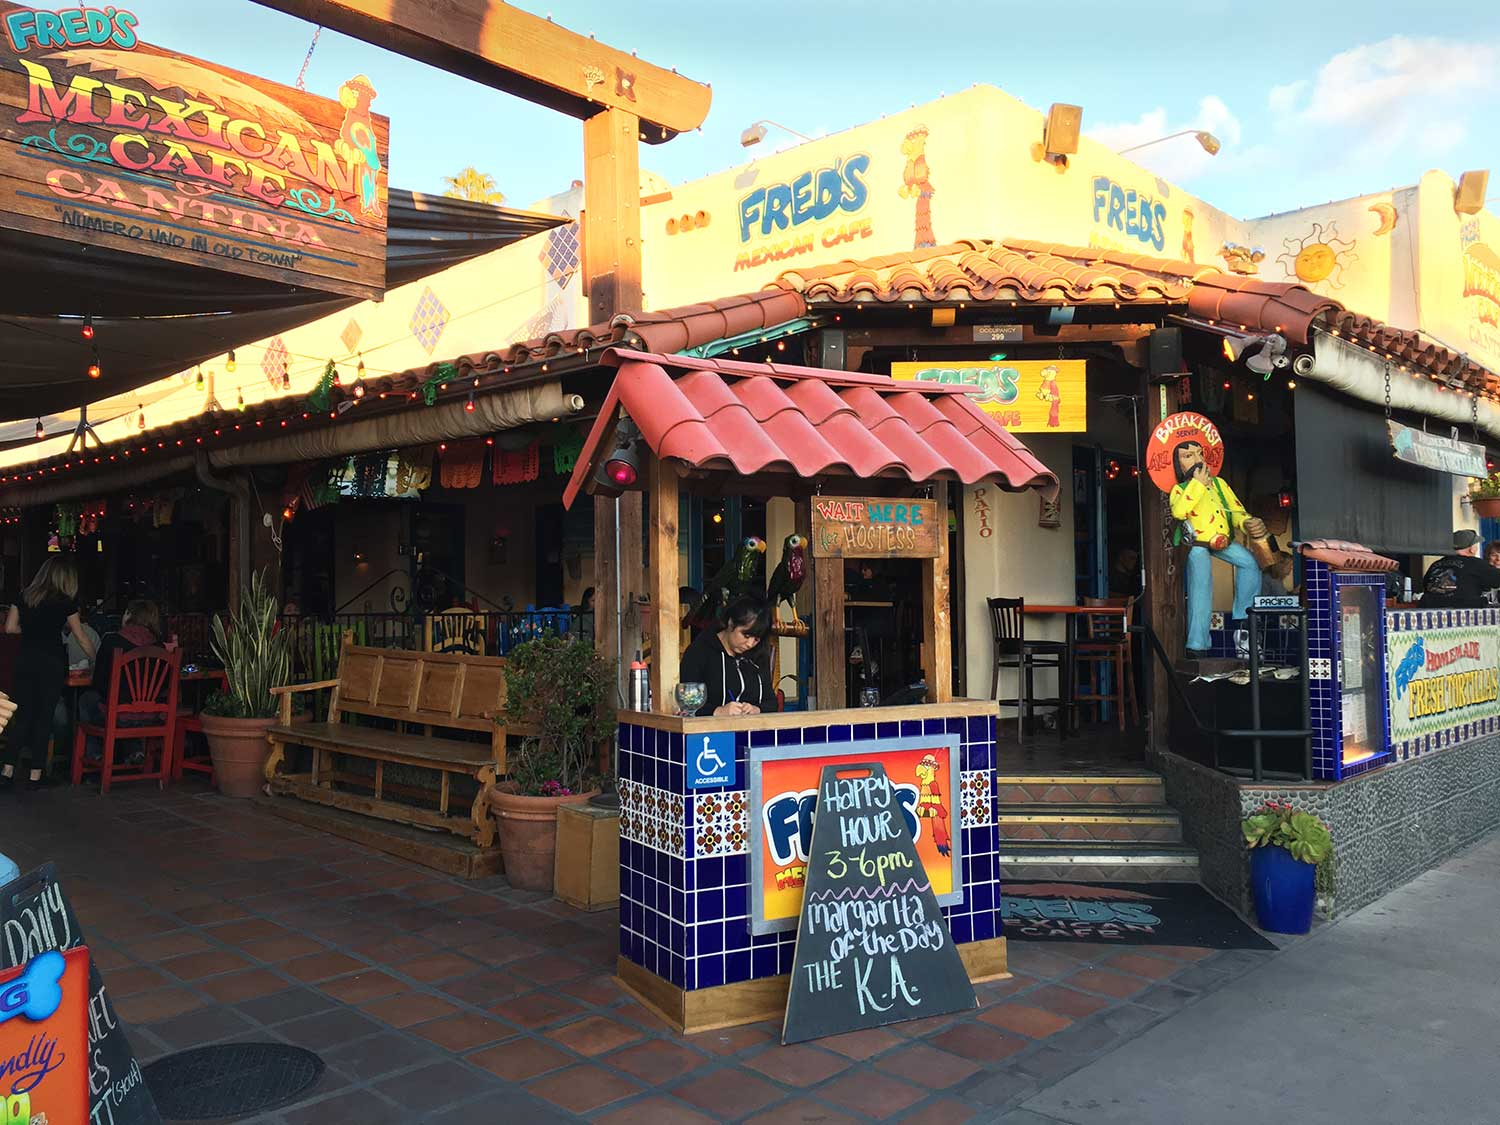 Fred's Mexican Cafe in Old Town, San Diego, CA, March 2018 - 5243